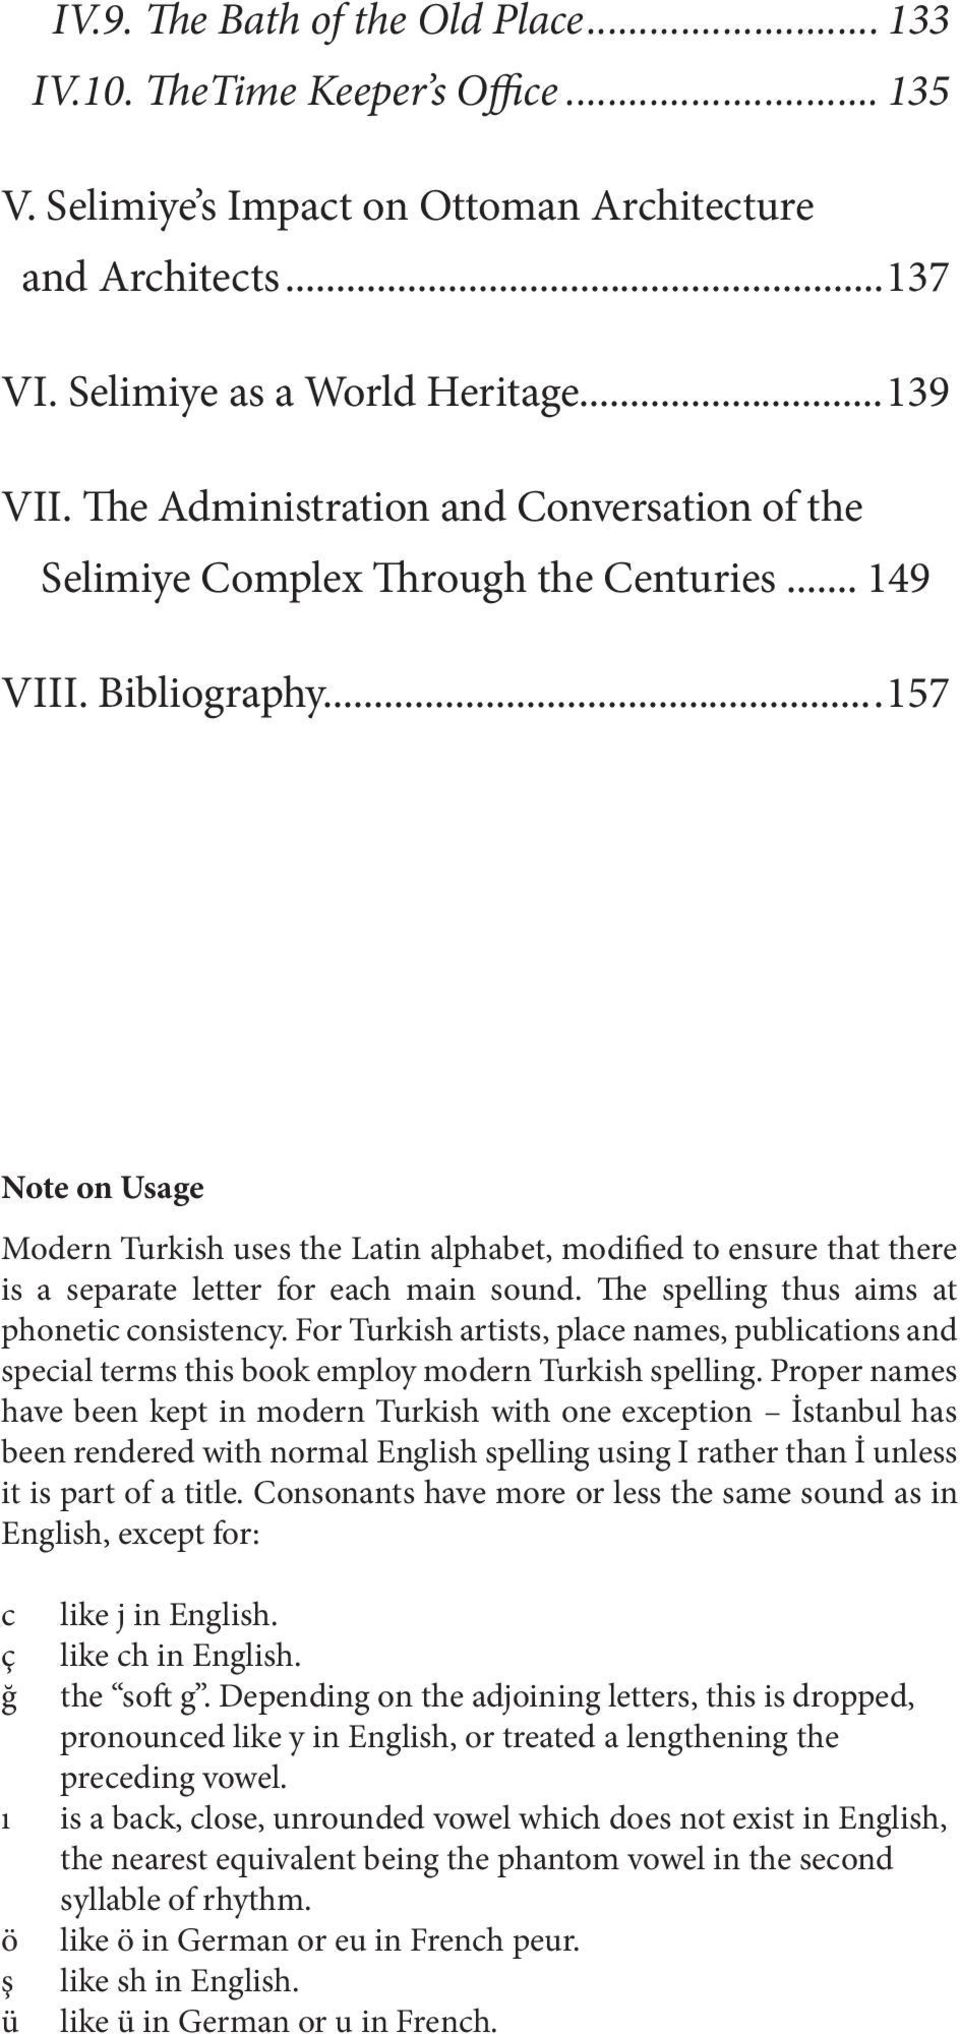 ...157 Note on Usage Modern Turkish uses the Latin alphabet, modified to ensure that there is a separate letter for each main sound. The spelling thus aims at phonetic consistency.